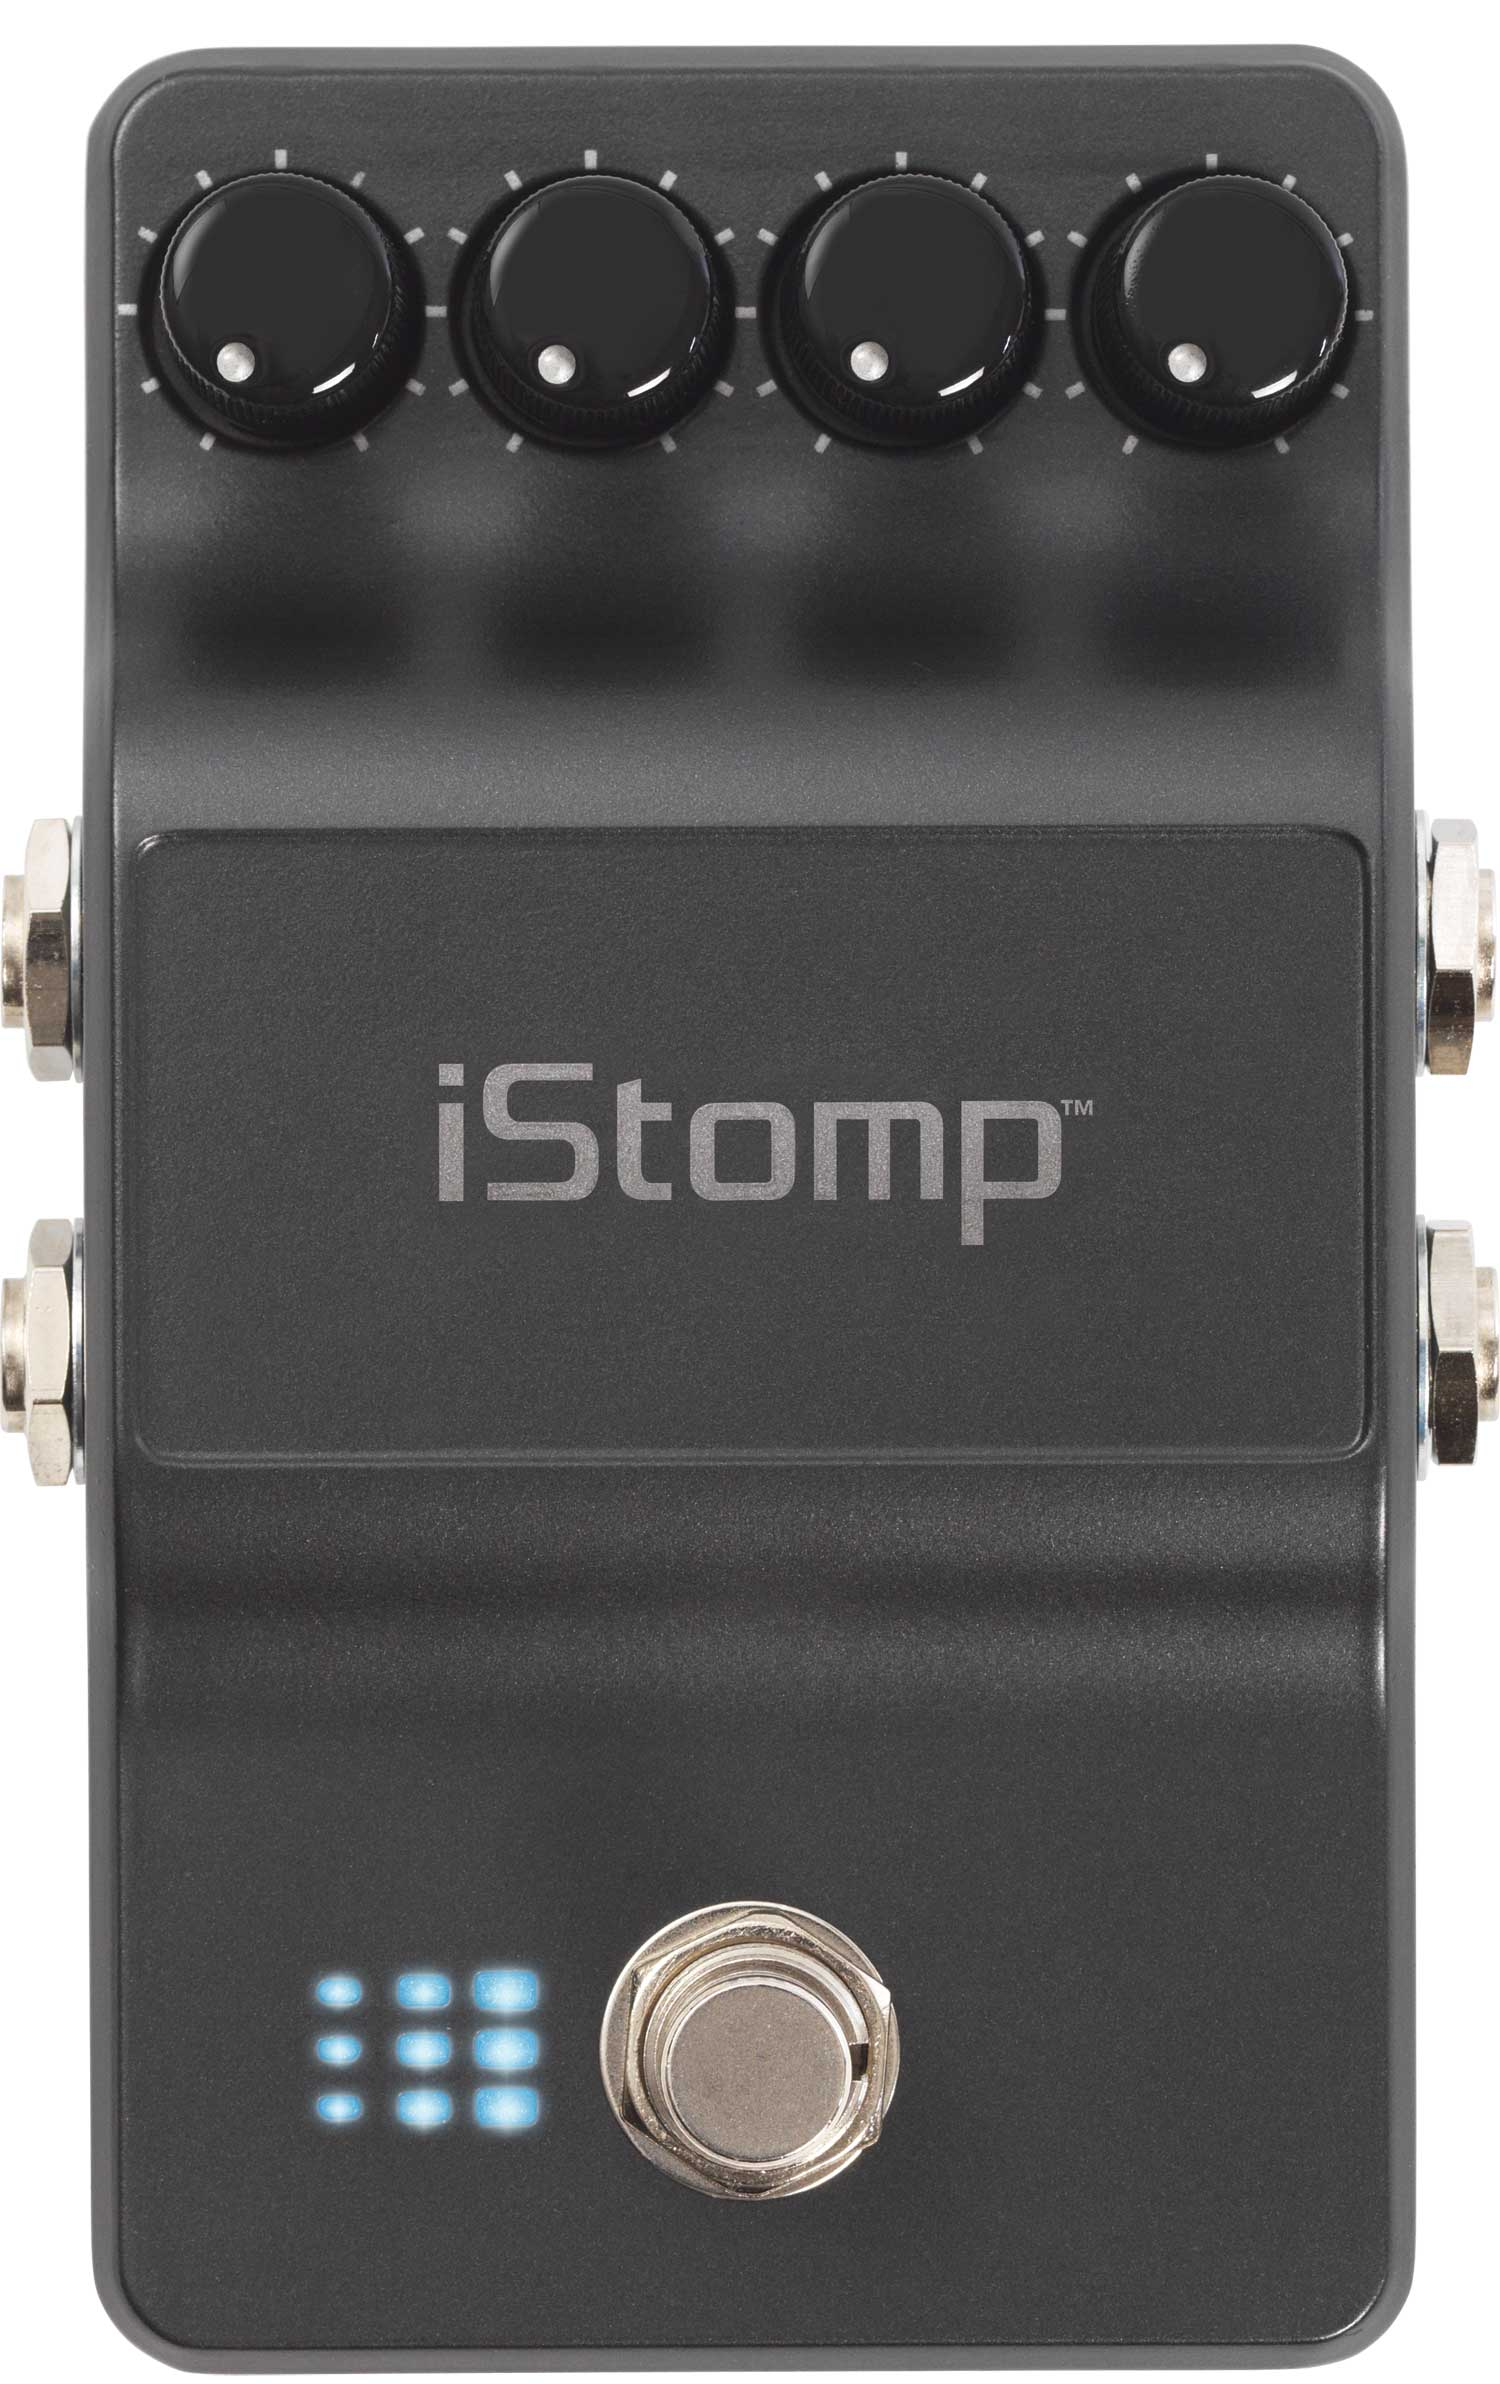 Istomp Stompbox Pedal For Ipod Iphone Or Ipad: Pedal